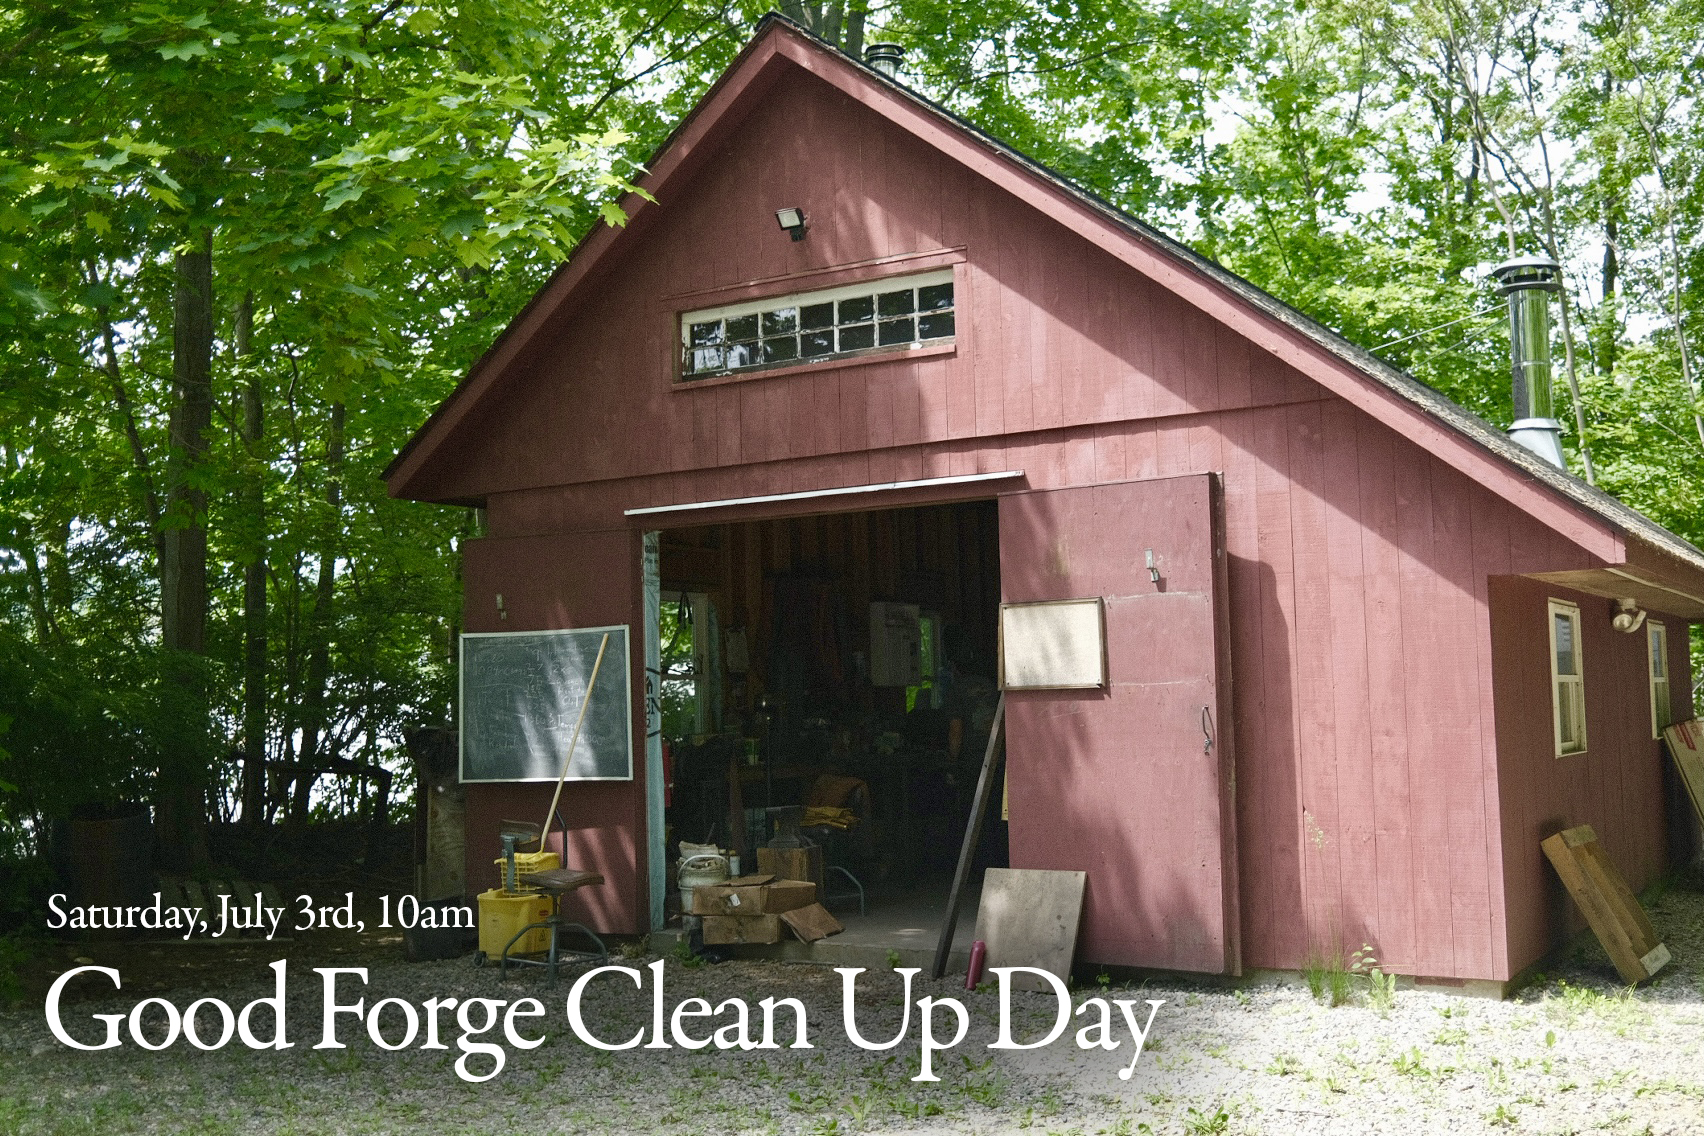 Good Forge Clean-Up Day